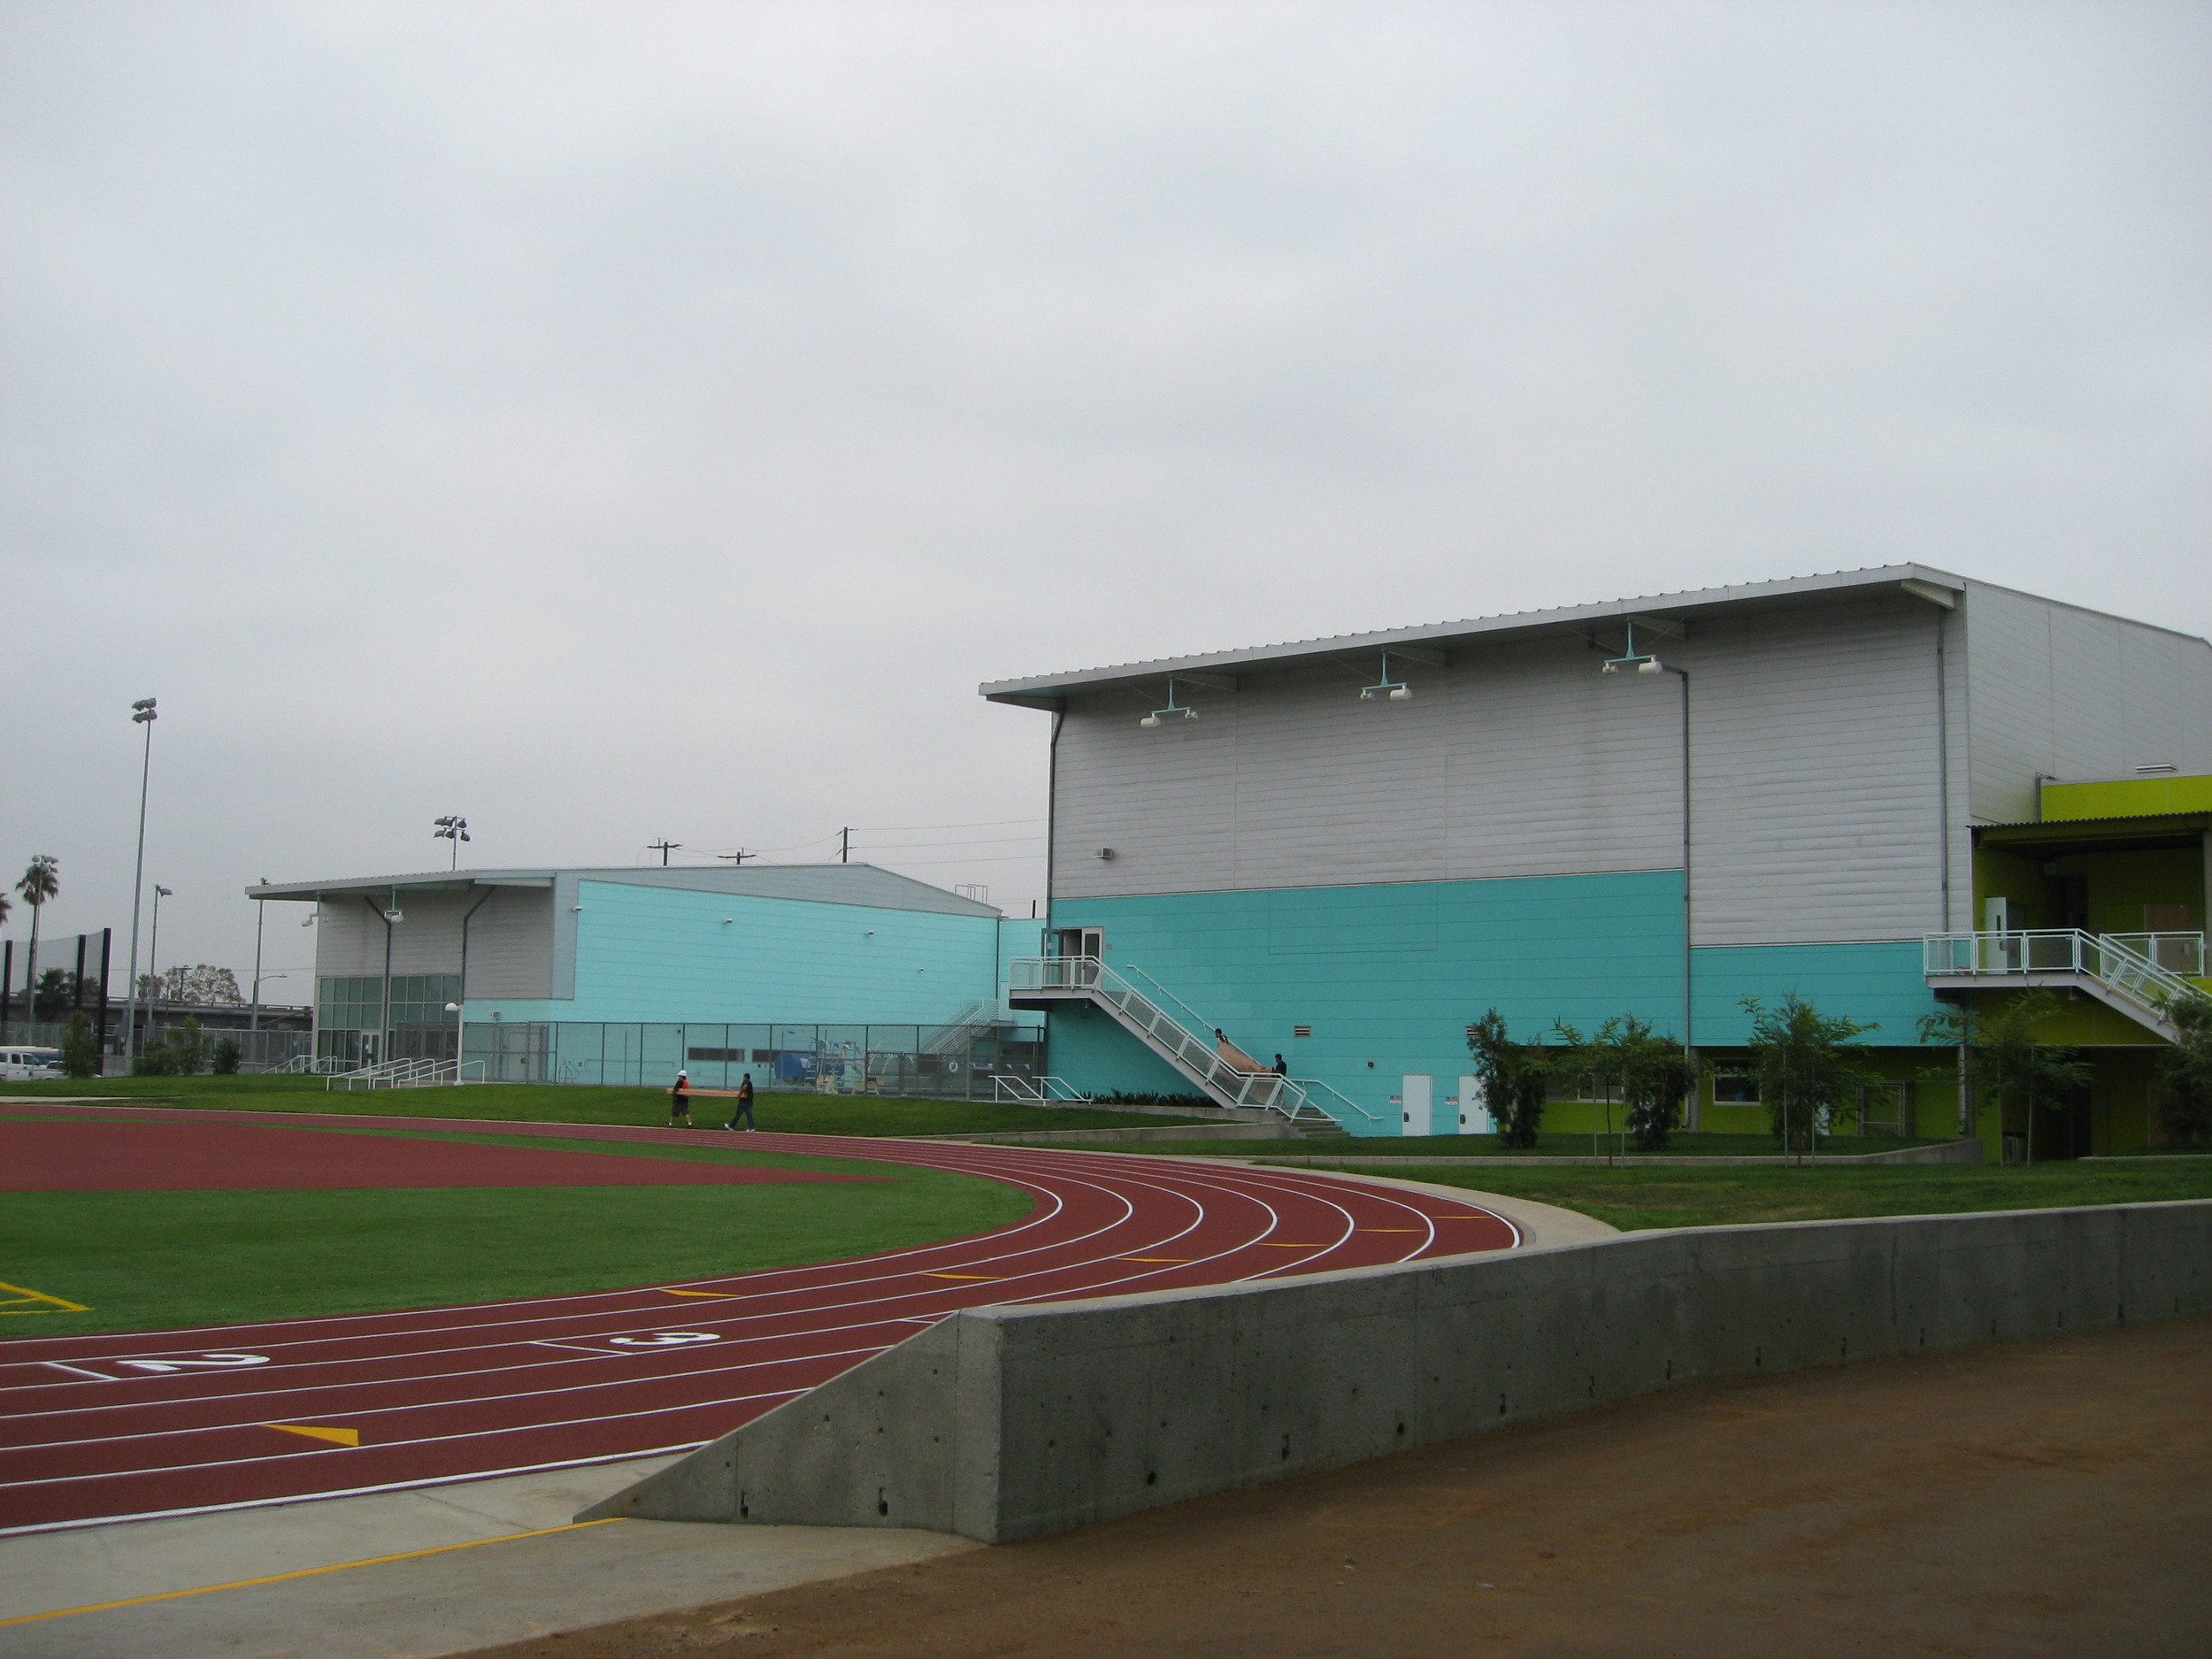 The school has a large and a small gymnasium along with an Olympic size pool.